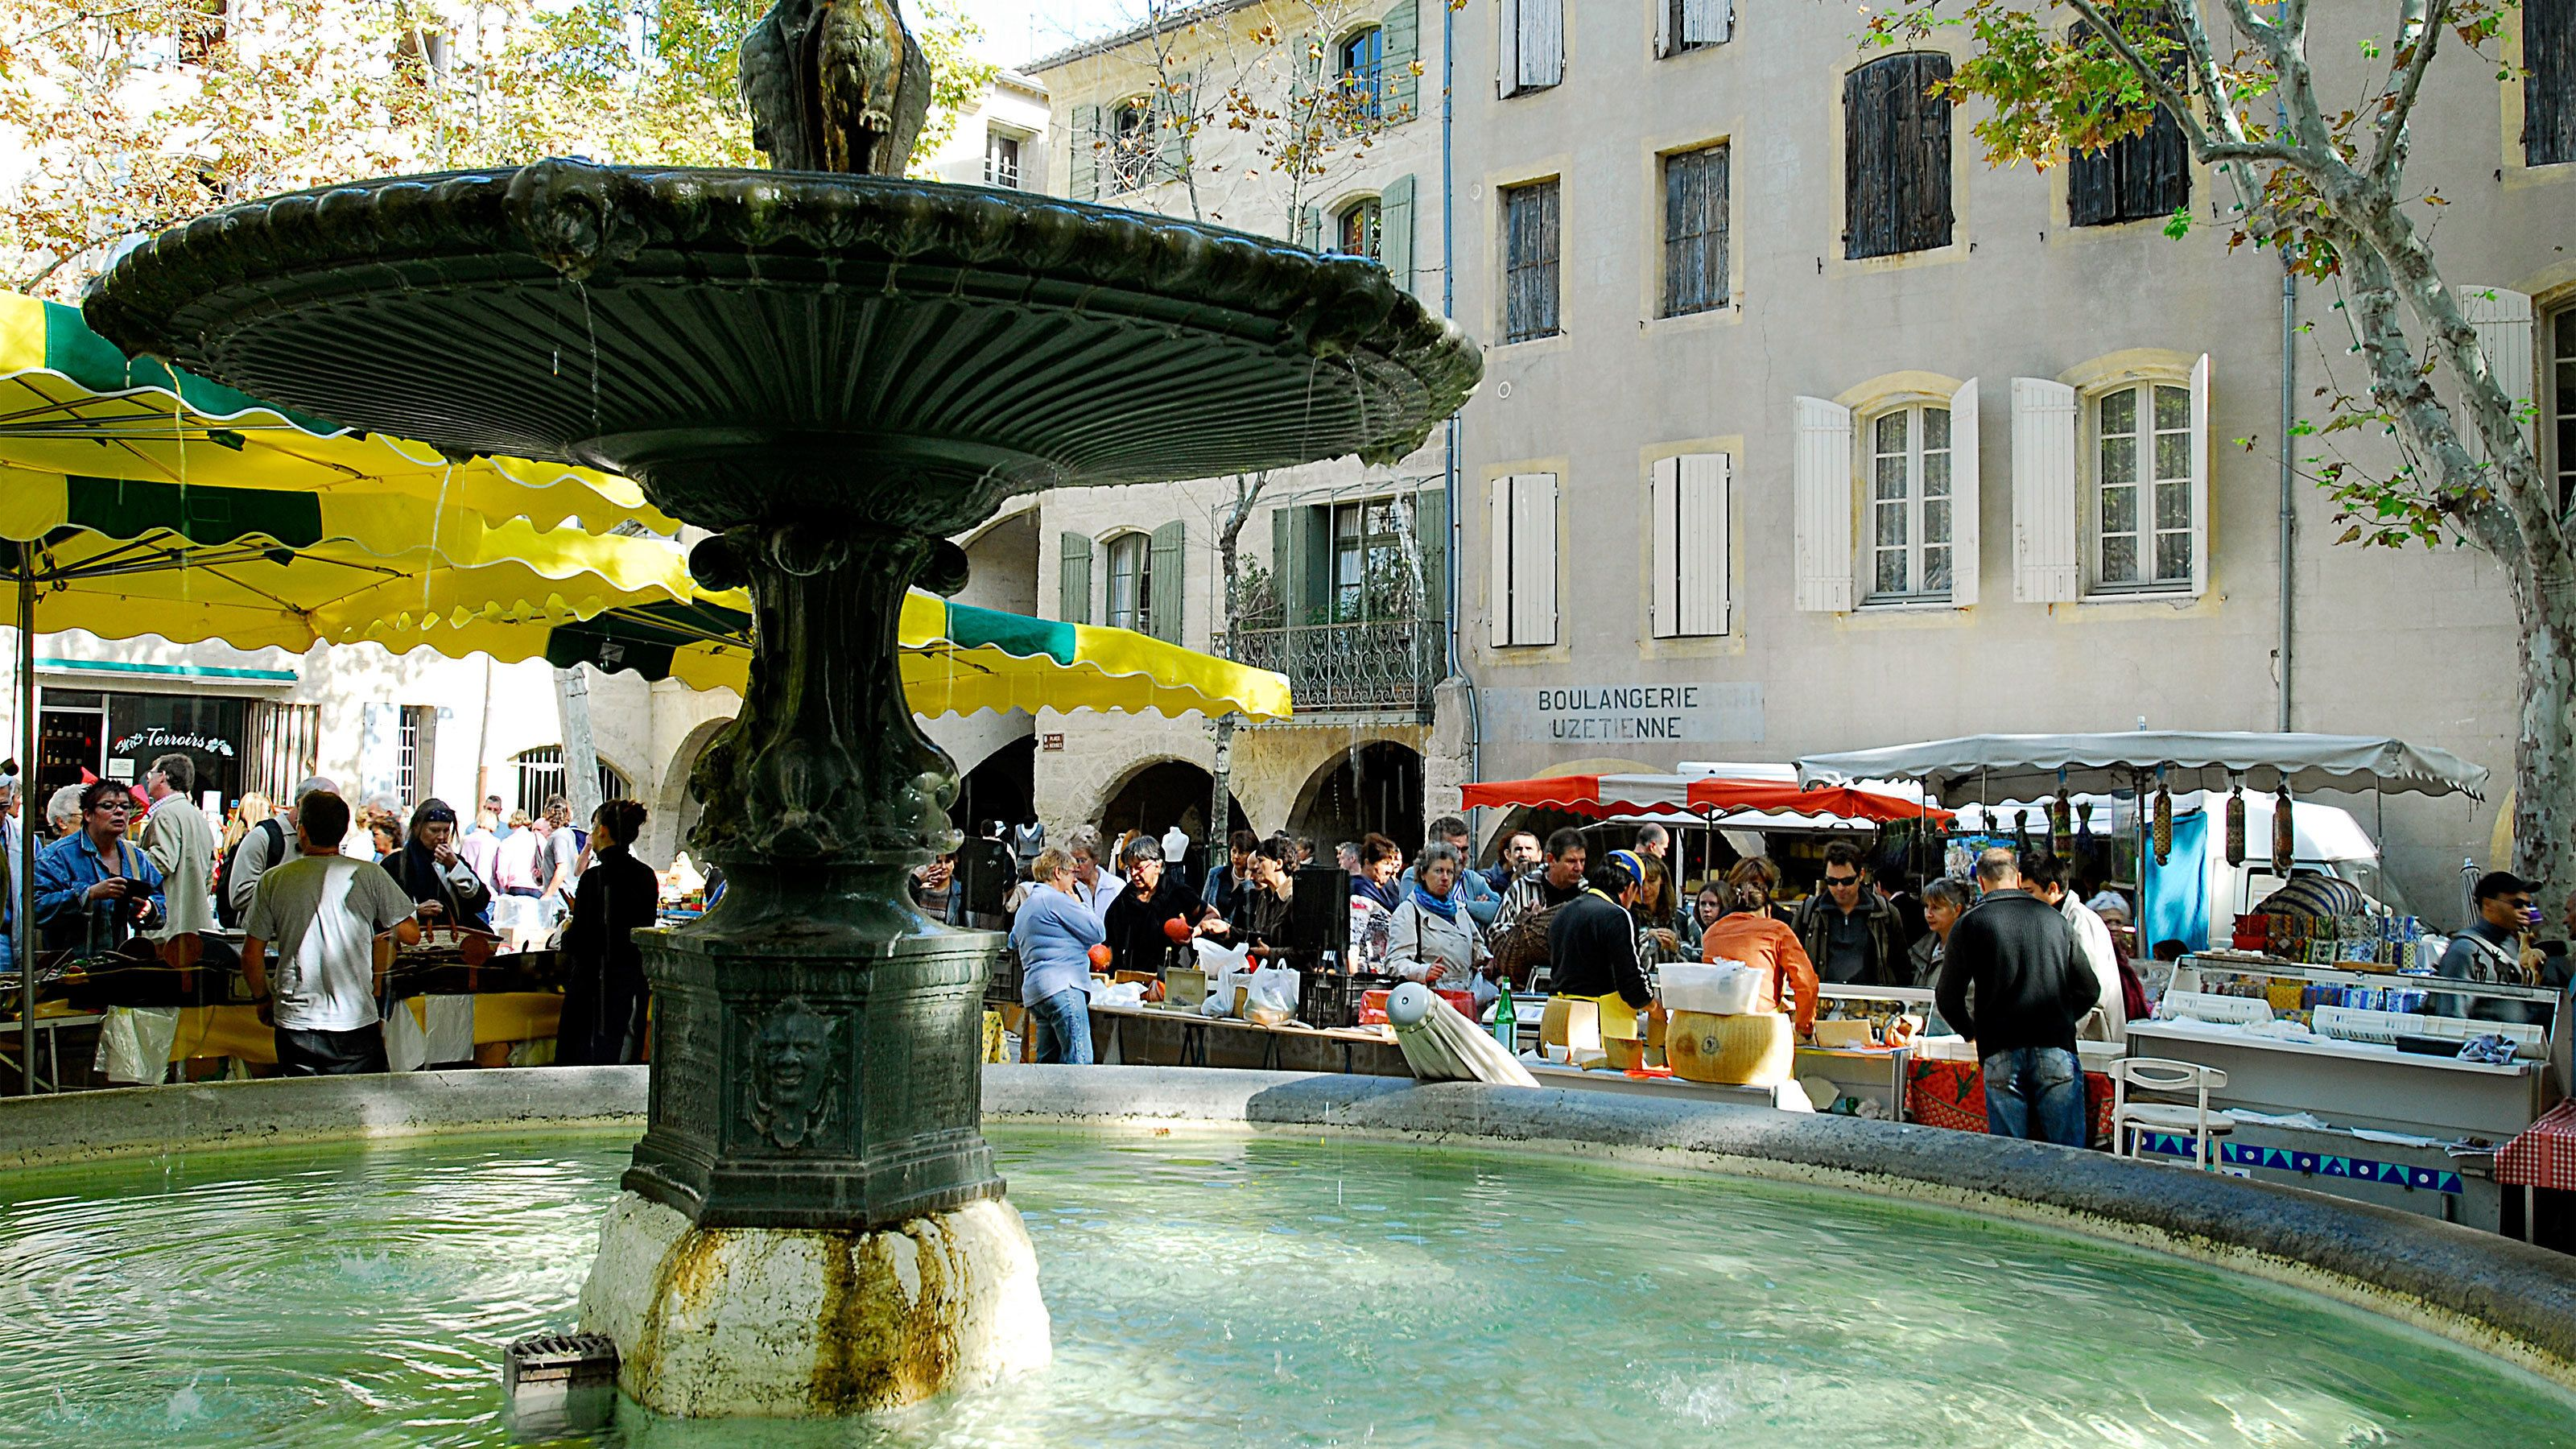 water fountain amidst the outdoor market in France